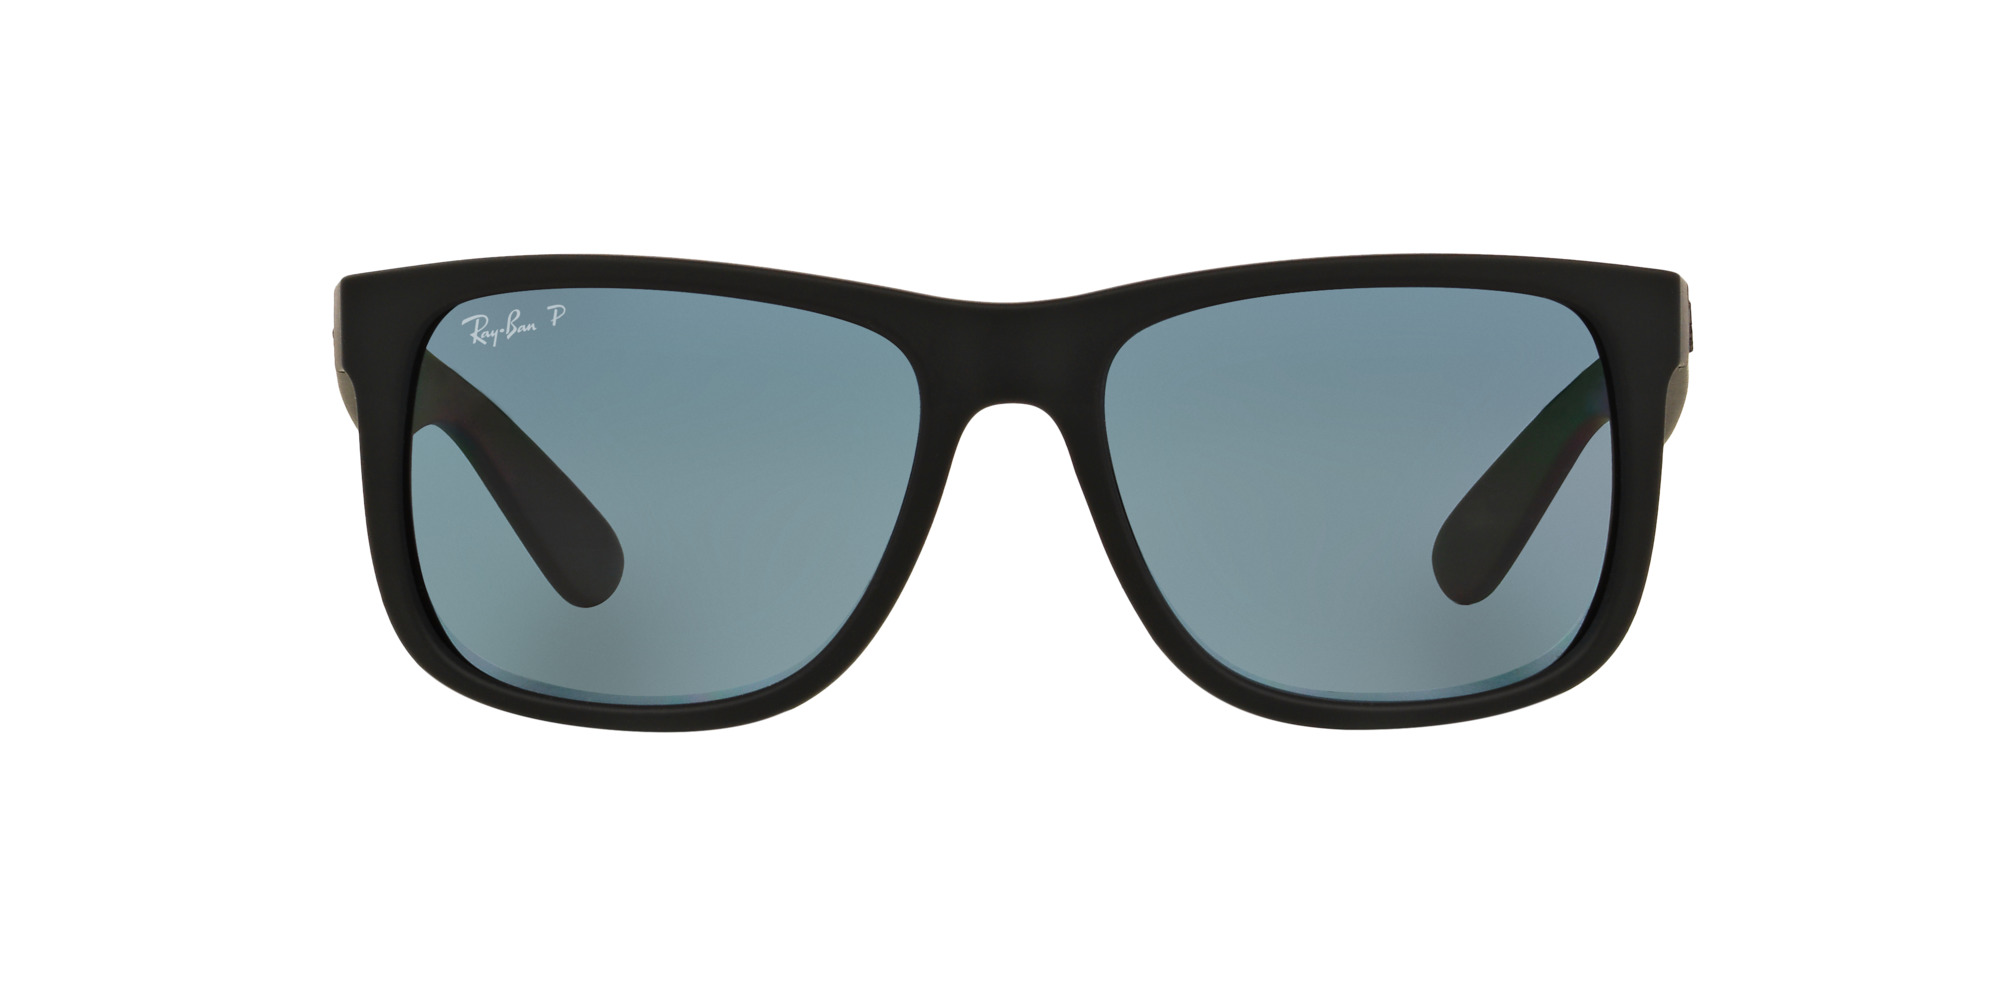 RAY-BAN JUSTIN RB 4165 622 2V POLARIZADO 55mm. 360° Product View 360°  Product View ... 755f34a2e1